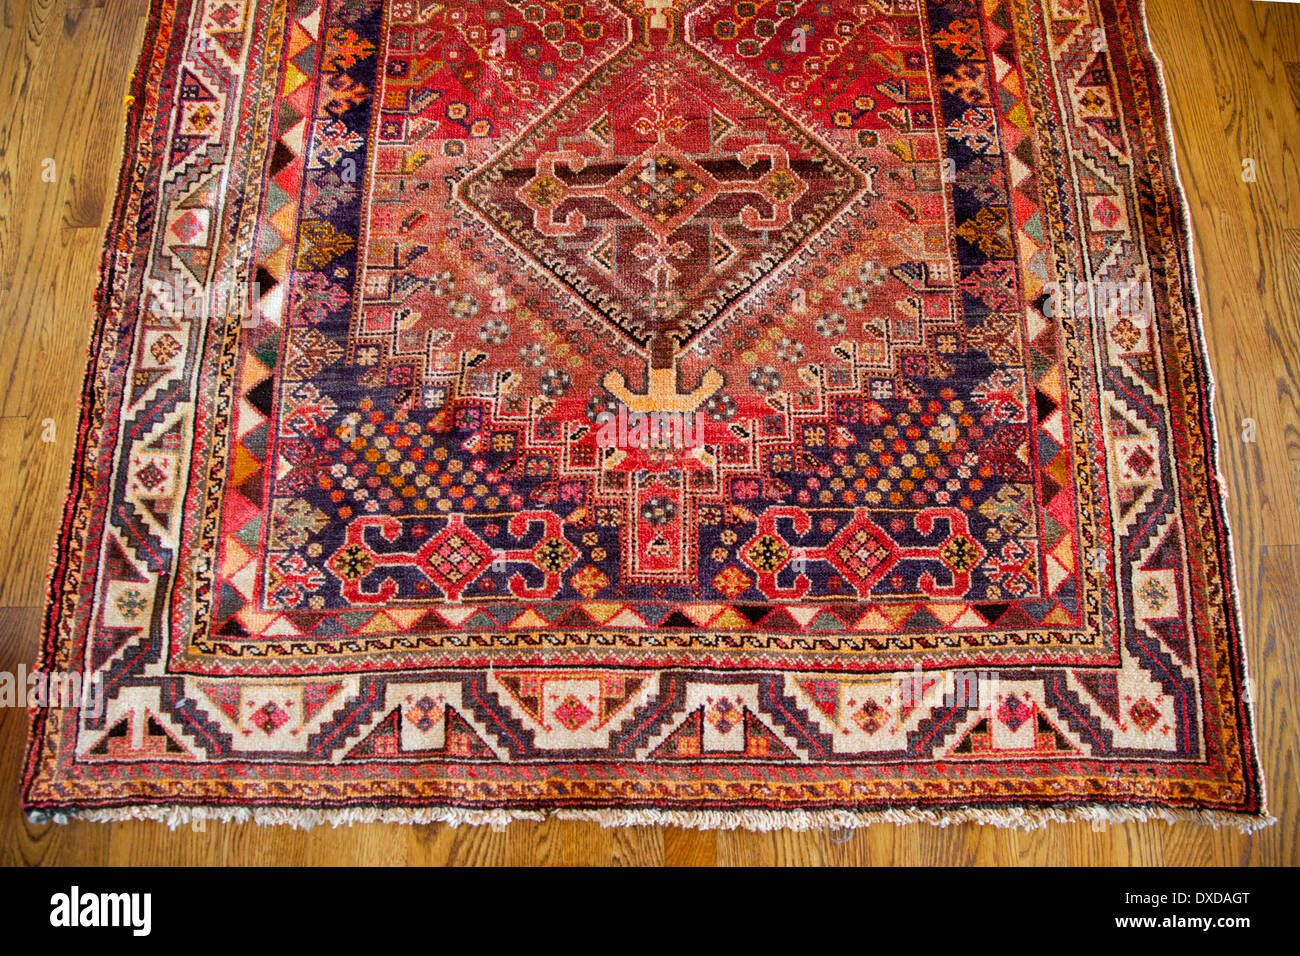 Iran Rugs Stock Photos Amp Iran Rugs Stock Images Alamy